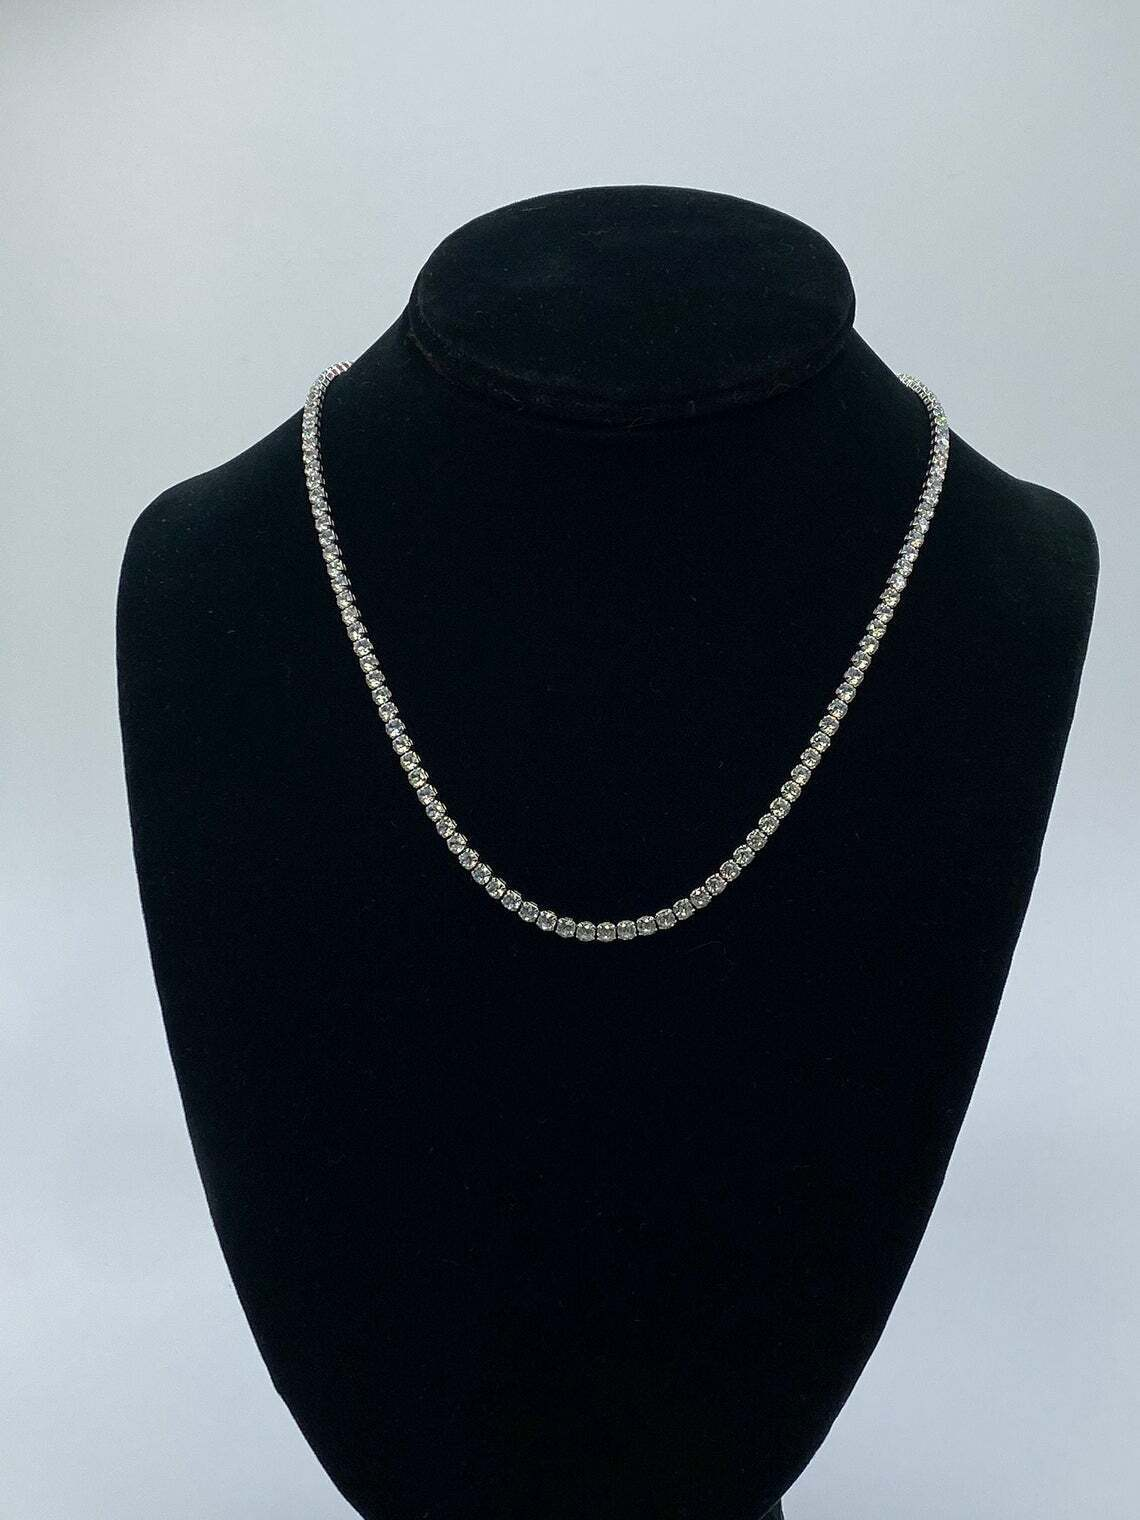 24Ct Round Cut Diamond Women's Tennis Necklace 925 Solid Sterling Silver 3mm 18 3